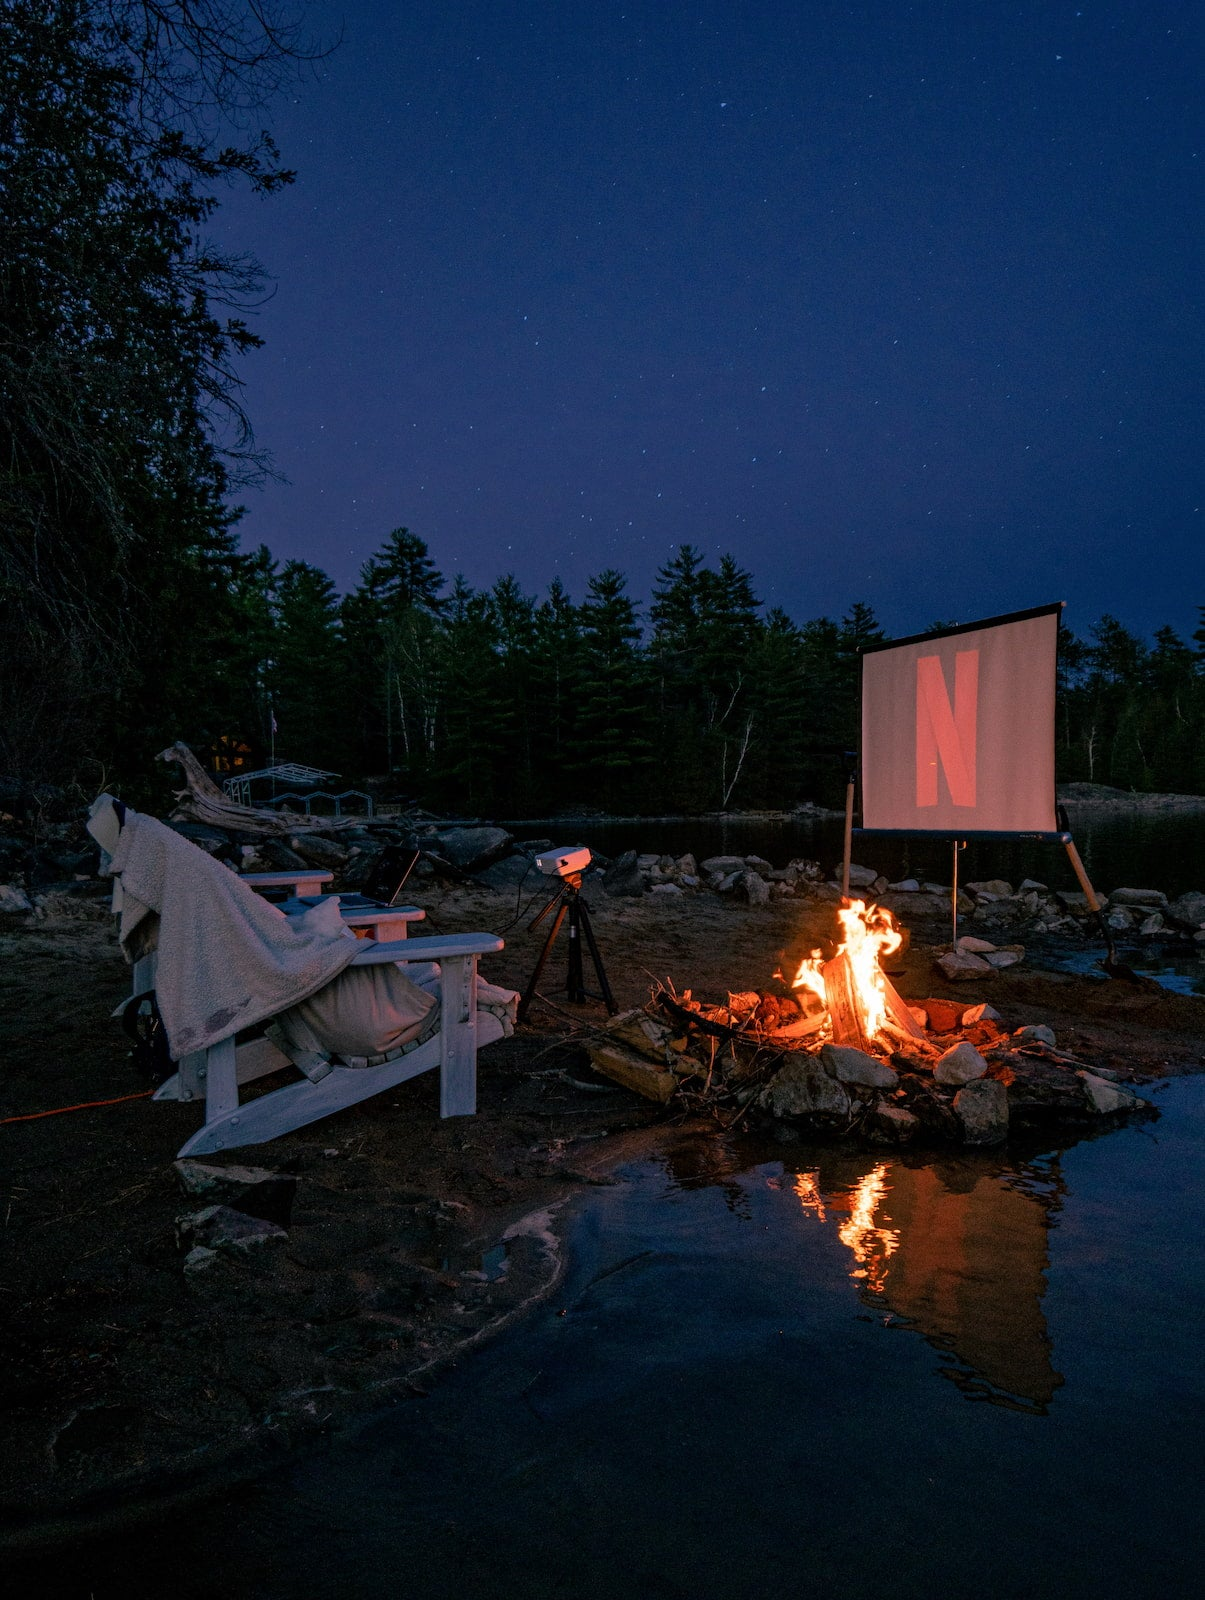 Screening a movie outside on a projector at the campsite with a campfire blazing.